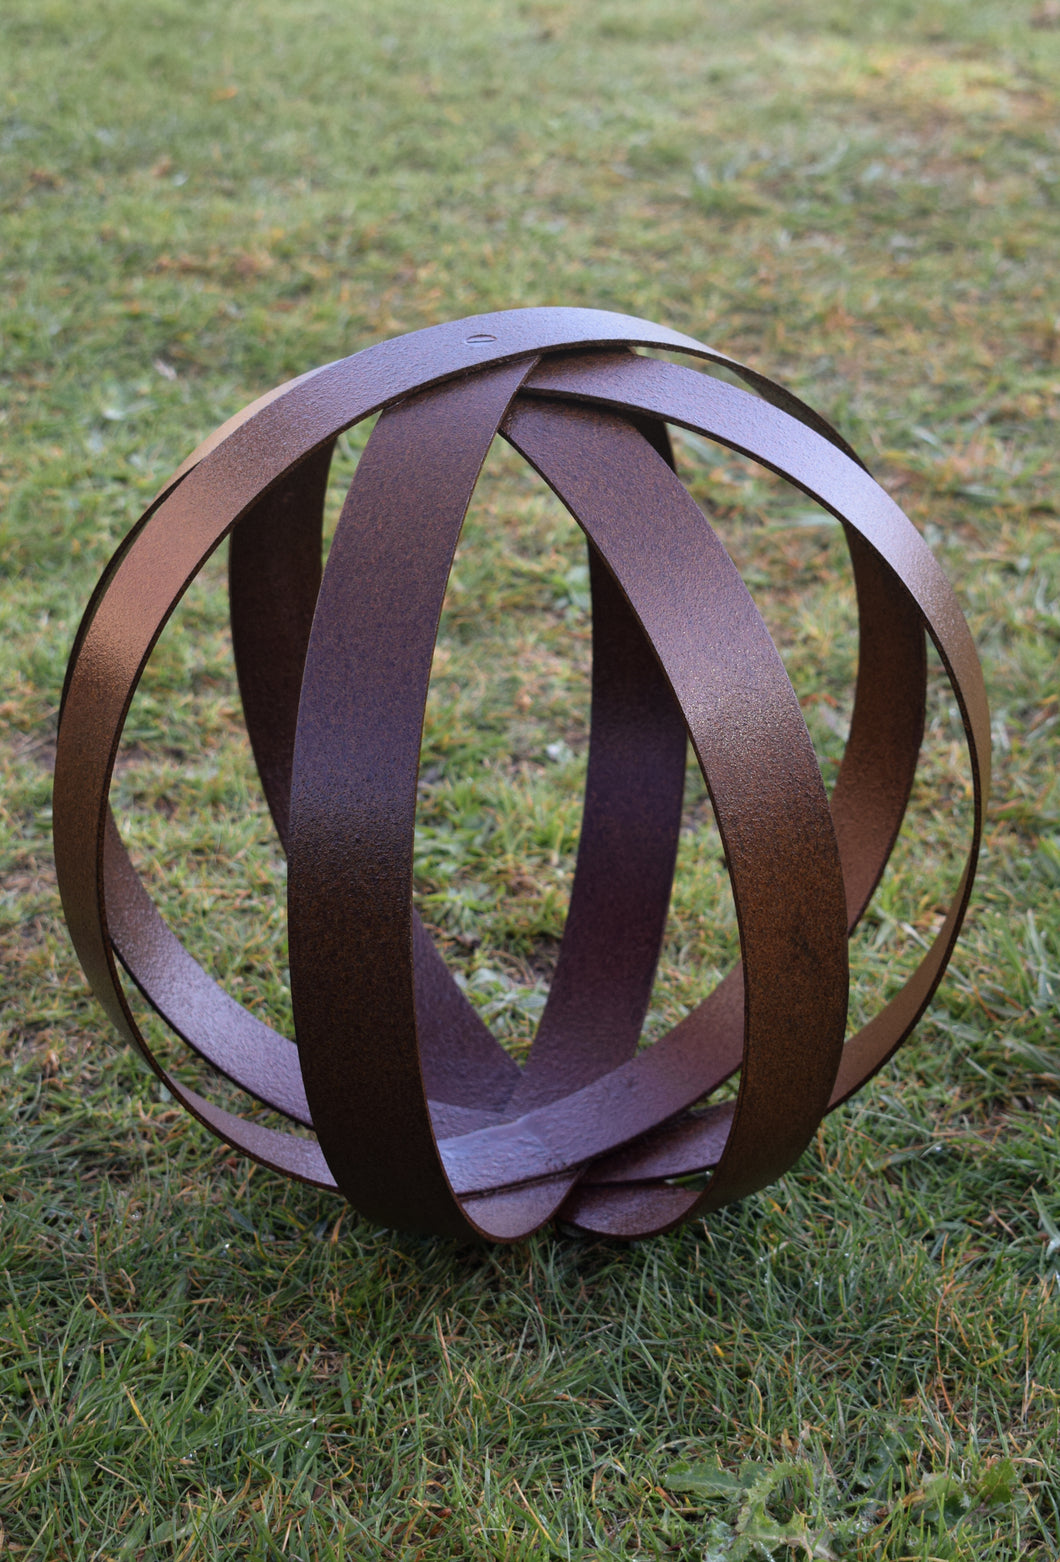 Corten Sphere - Child